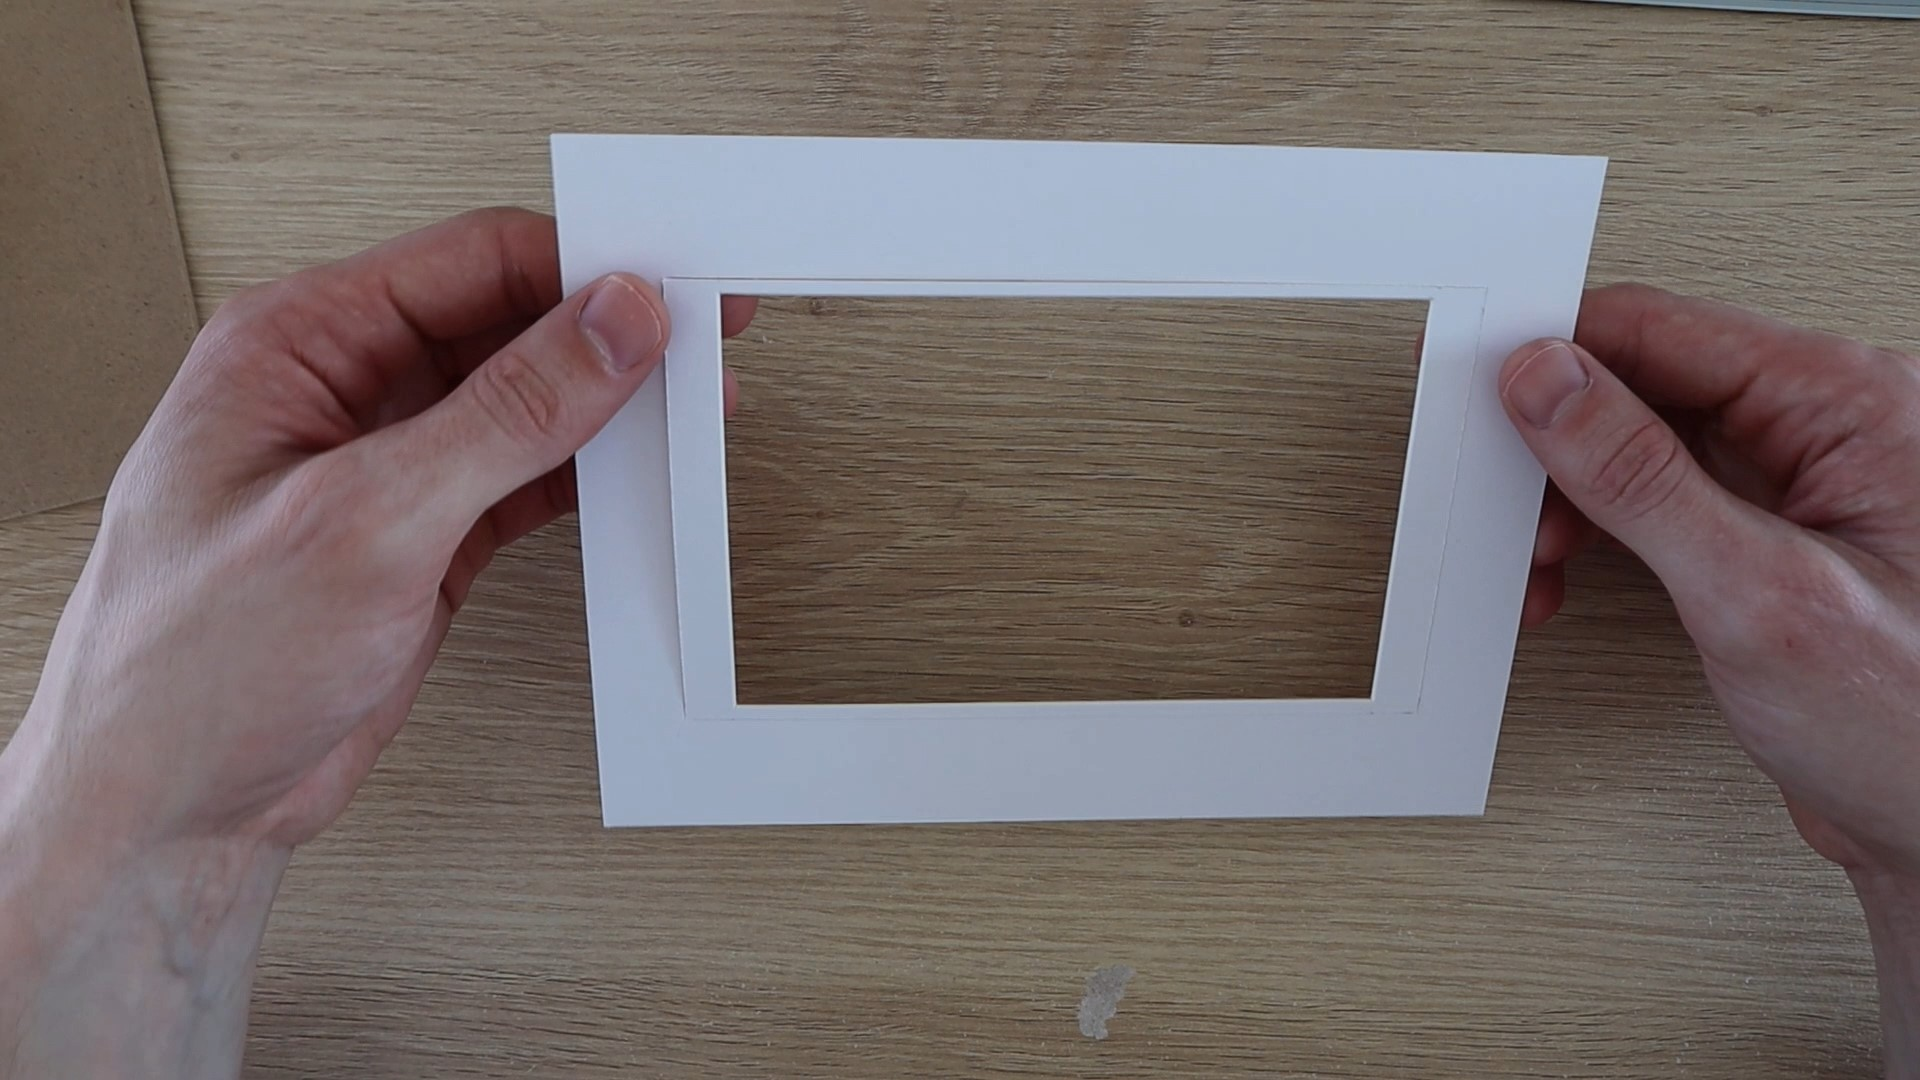 Cut The Frame Insert Larger To Fit The New Display